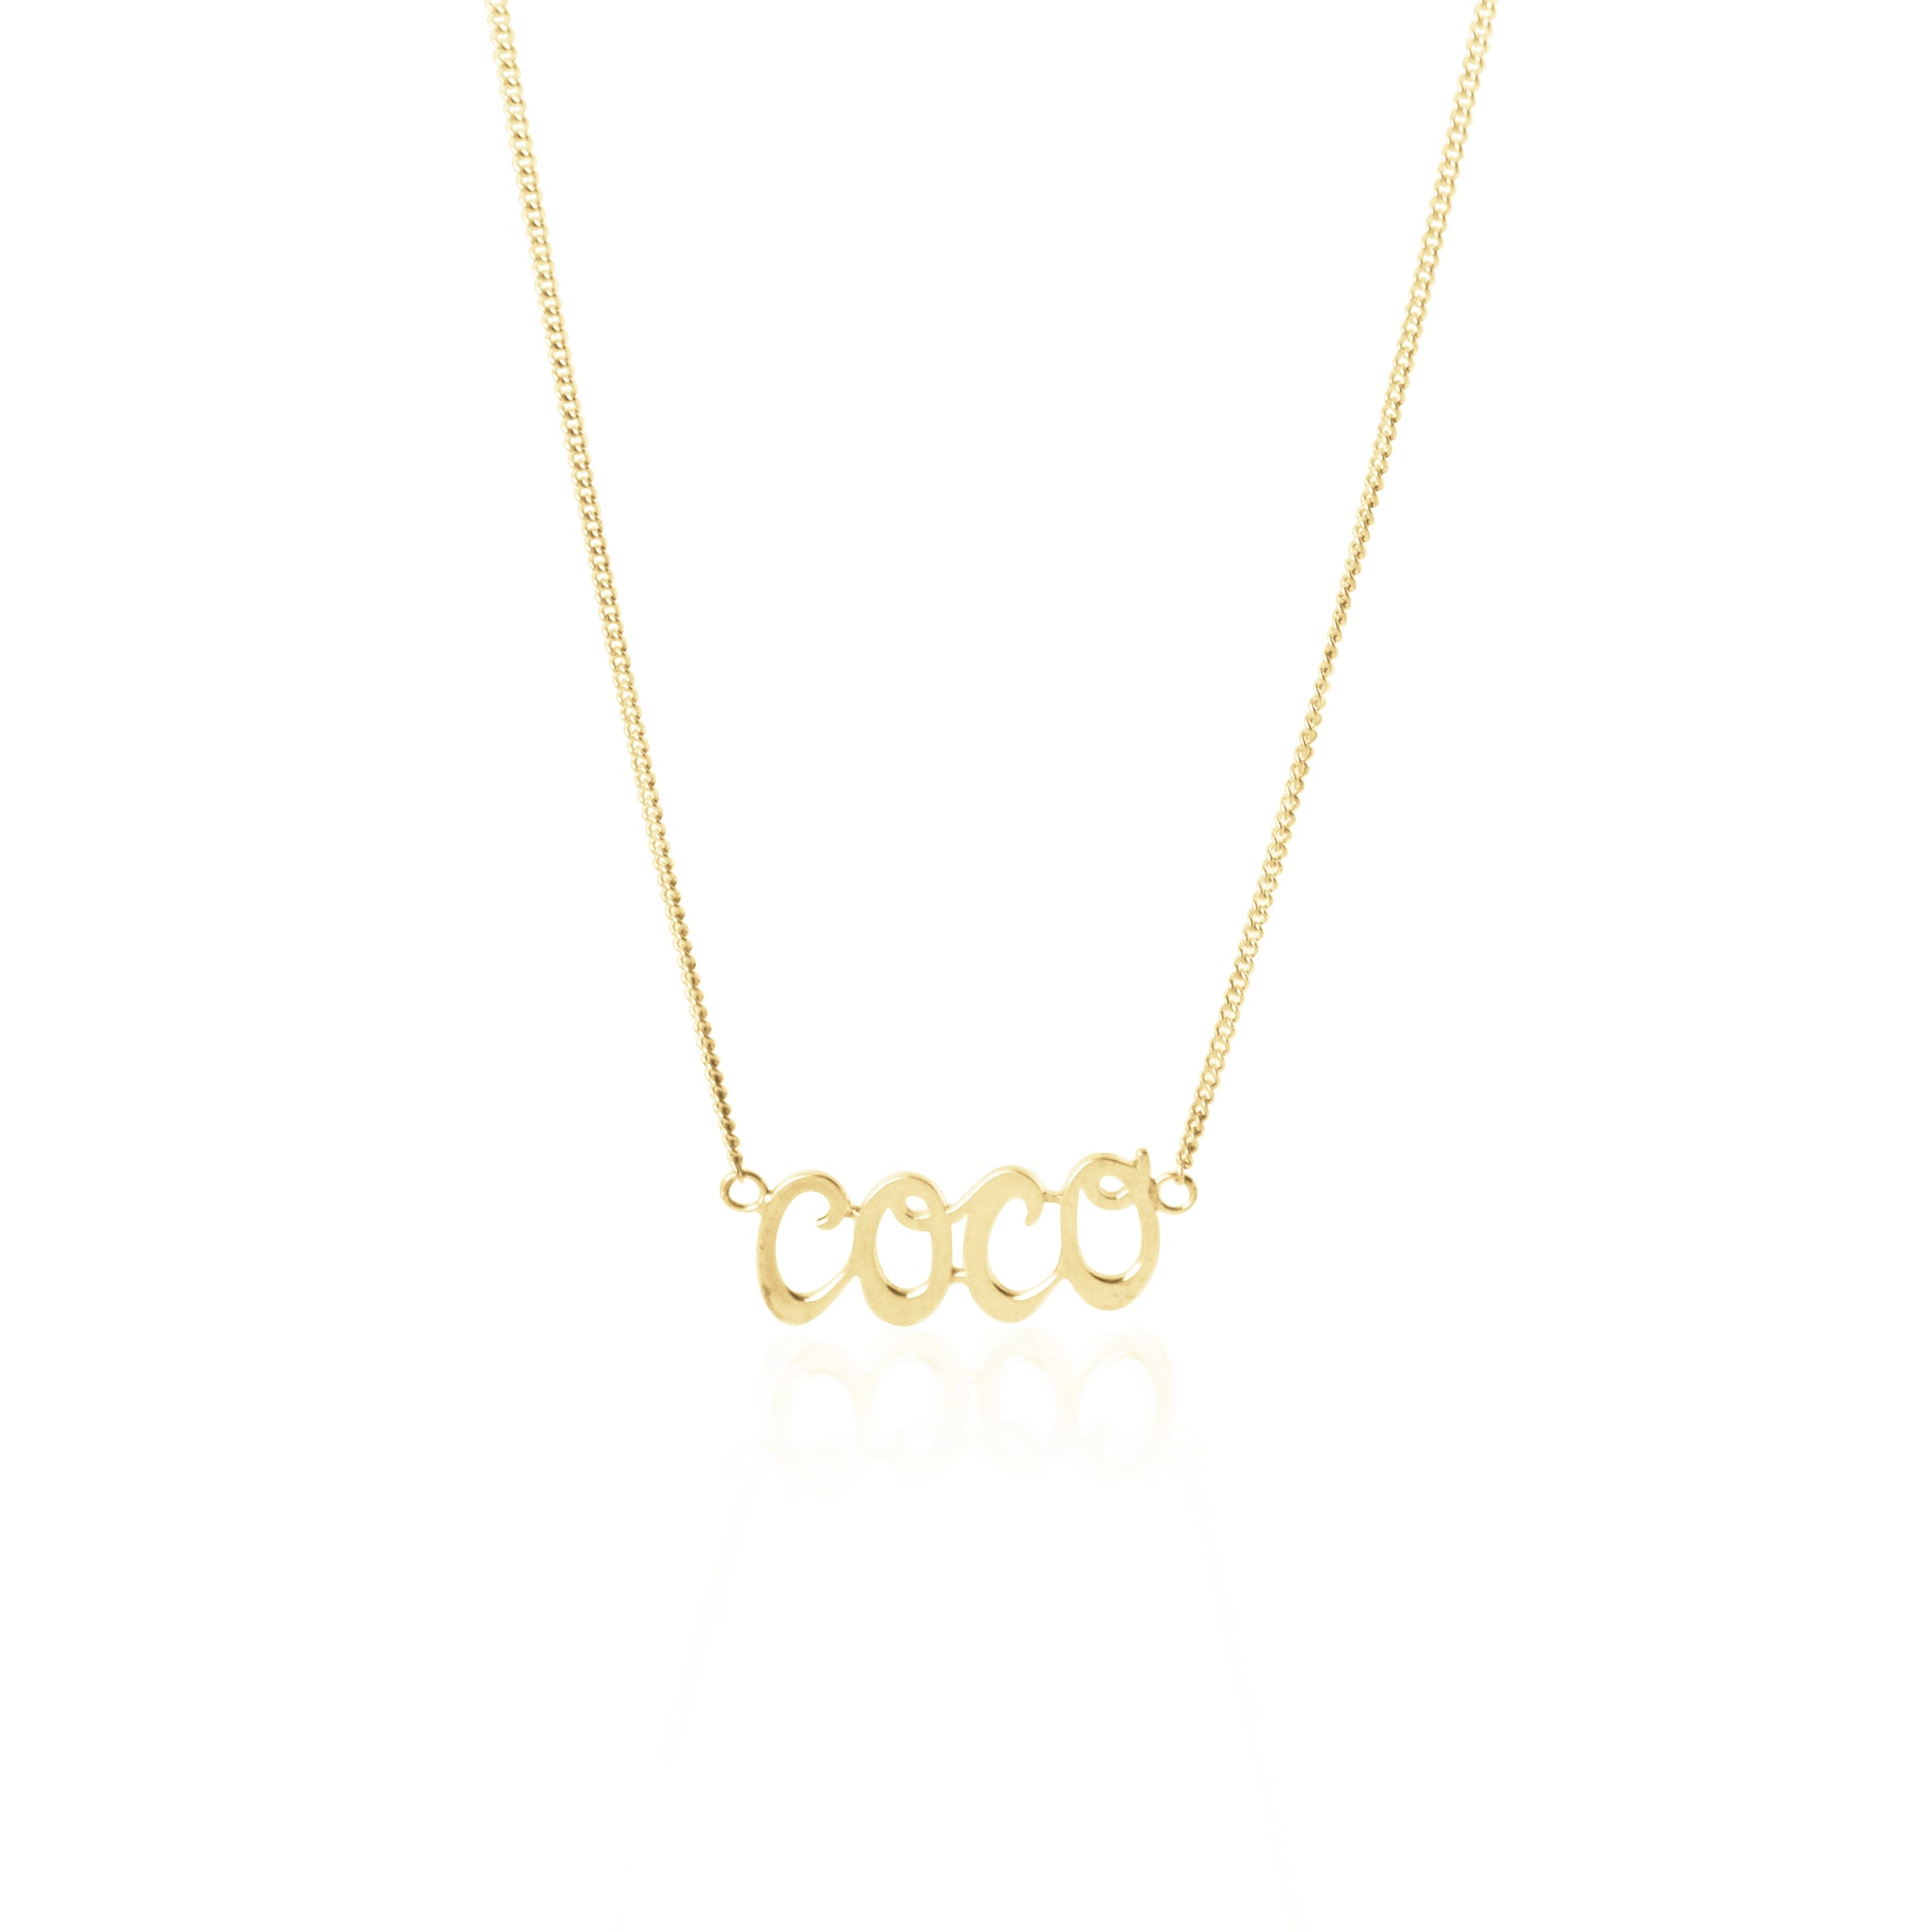 Coconut and Bliss x La Luna Rose Coco Necklace - GOLD